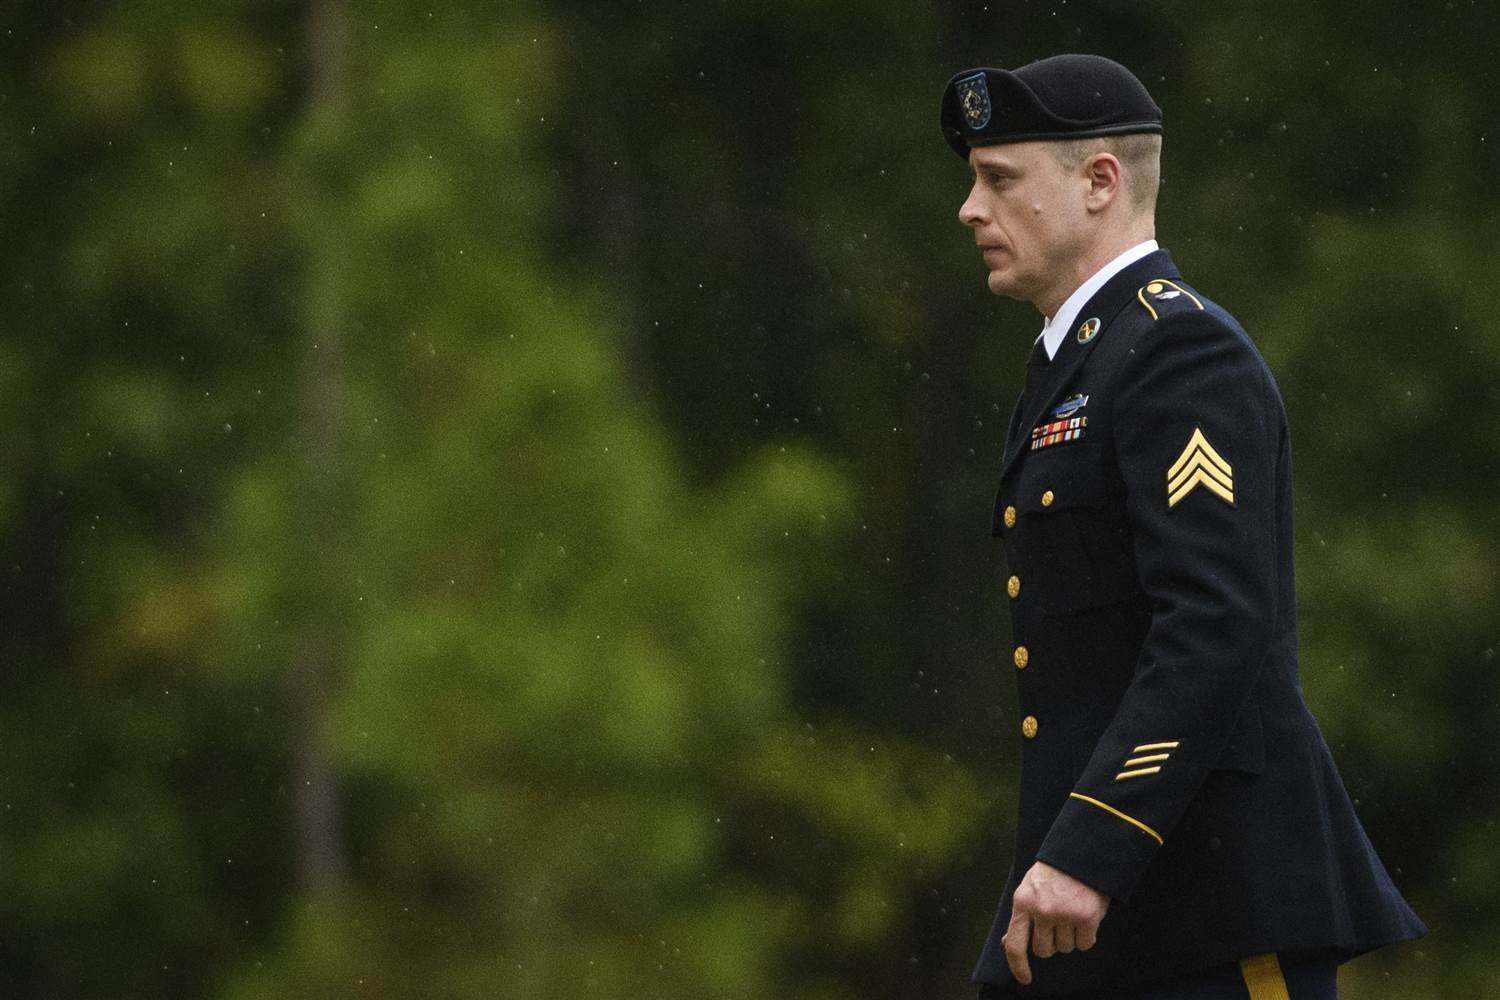 Bergdahl, facing sentencing, says Taliban treated him better than Army